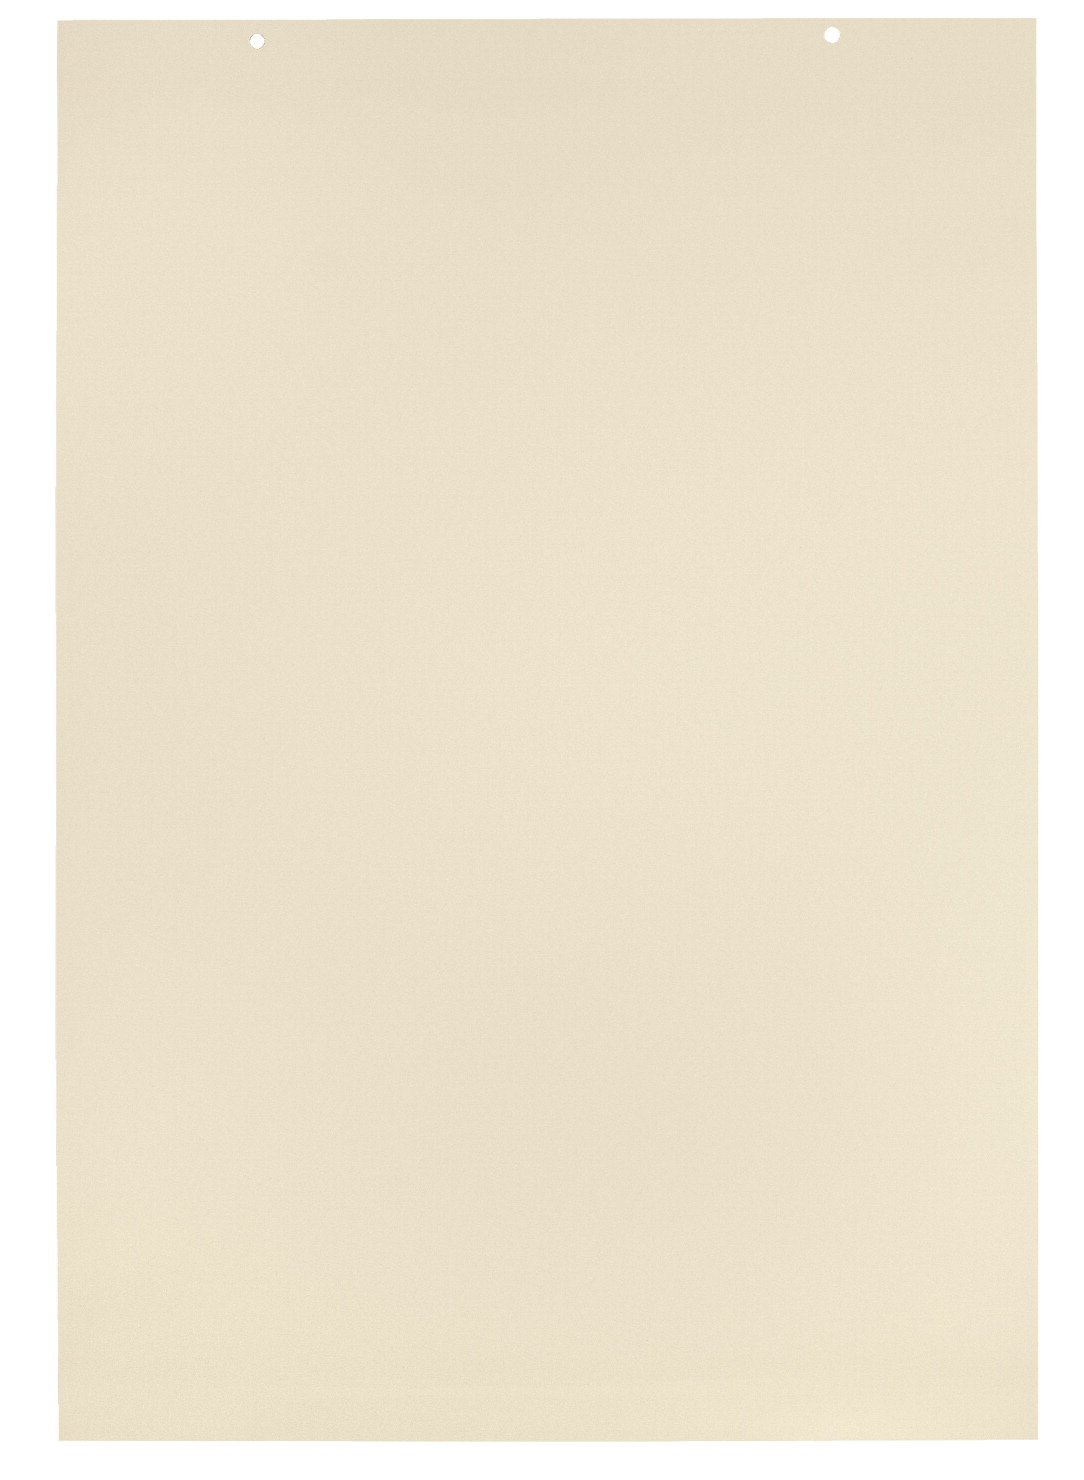 School Smart Unruled Manila Tag Chart Paper - 24 x 36 inches - Pack of 100 (6438)